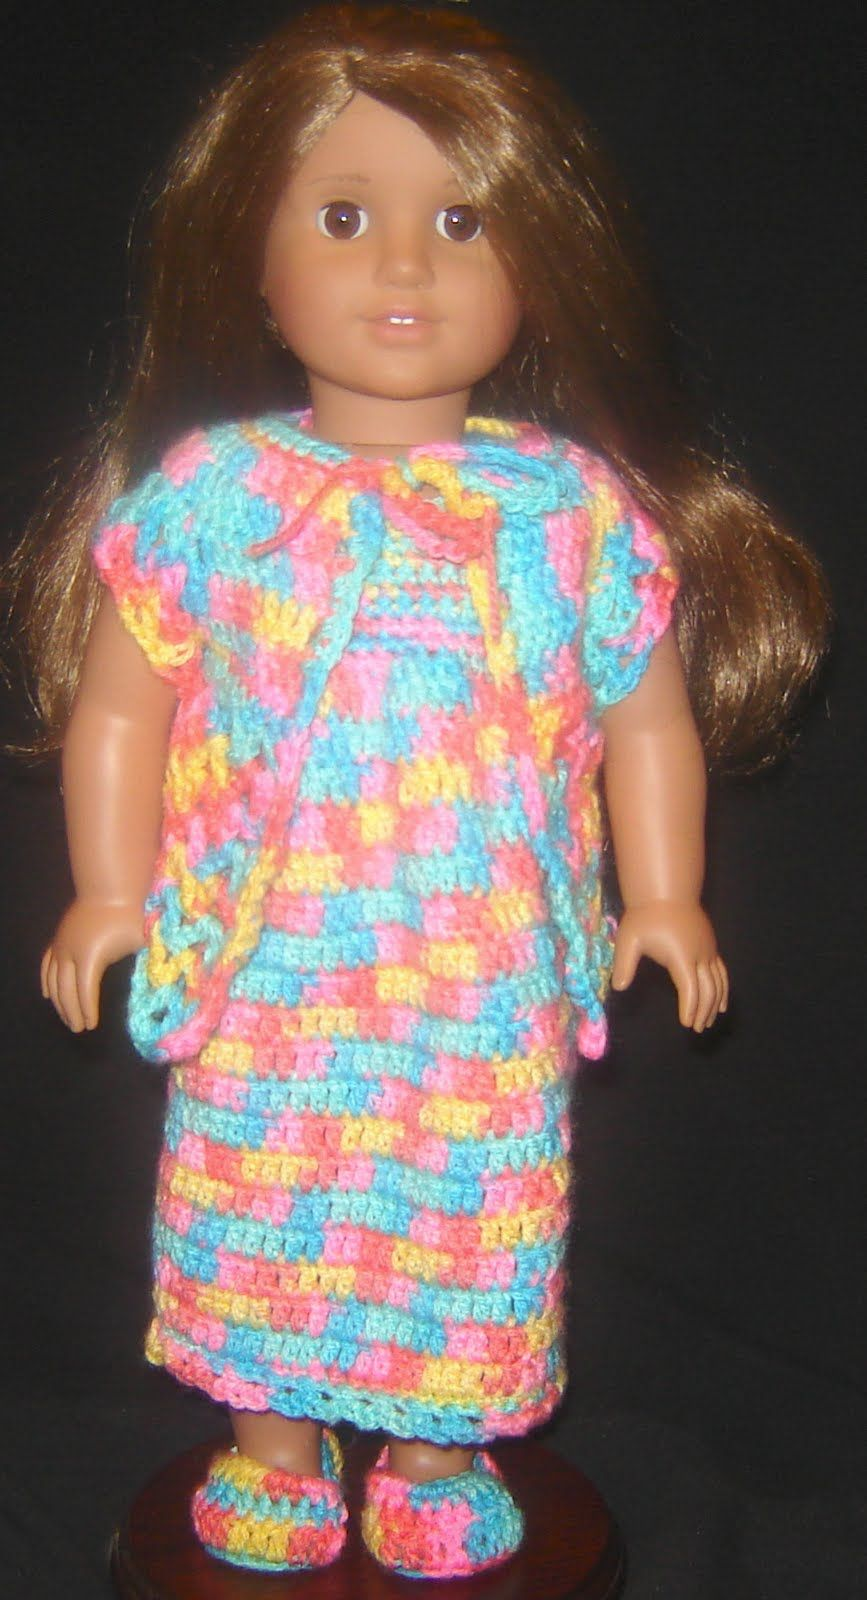 Bizzy crochet nightie robe slippers 18 doll clothes pattern bizzy crochet nightie robe slippers 18 doll clothes pattern pinned bankloansurffo Choice Image